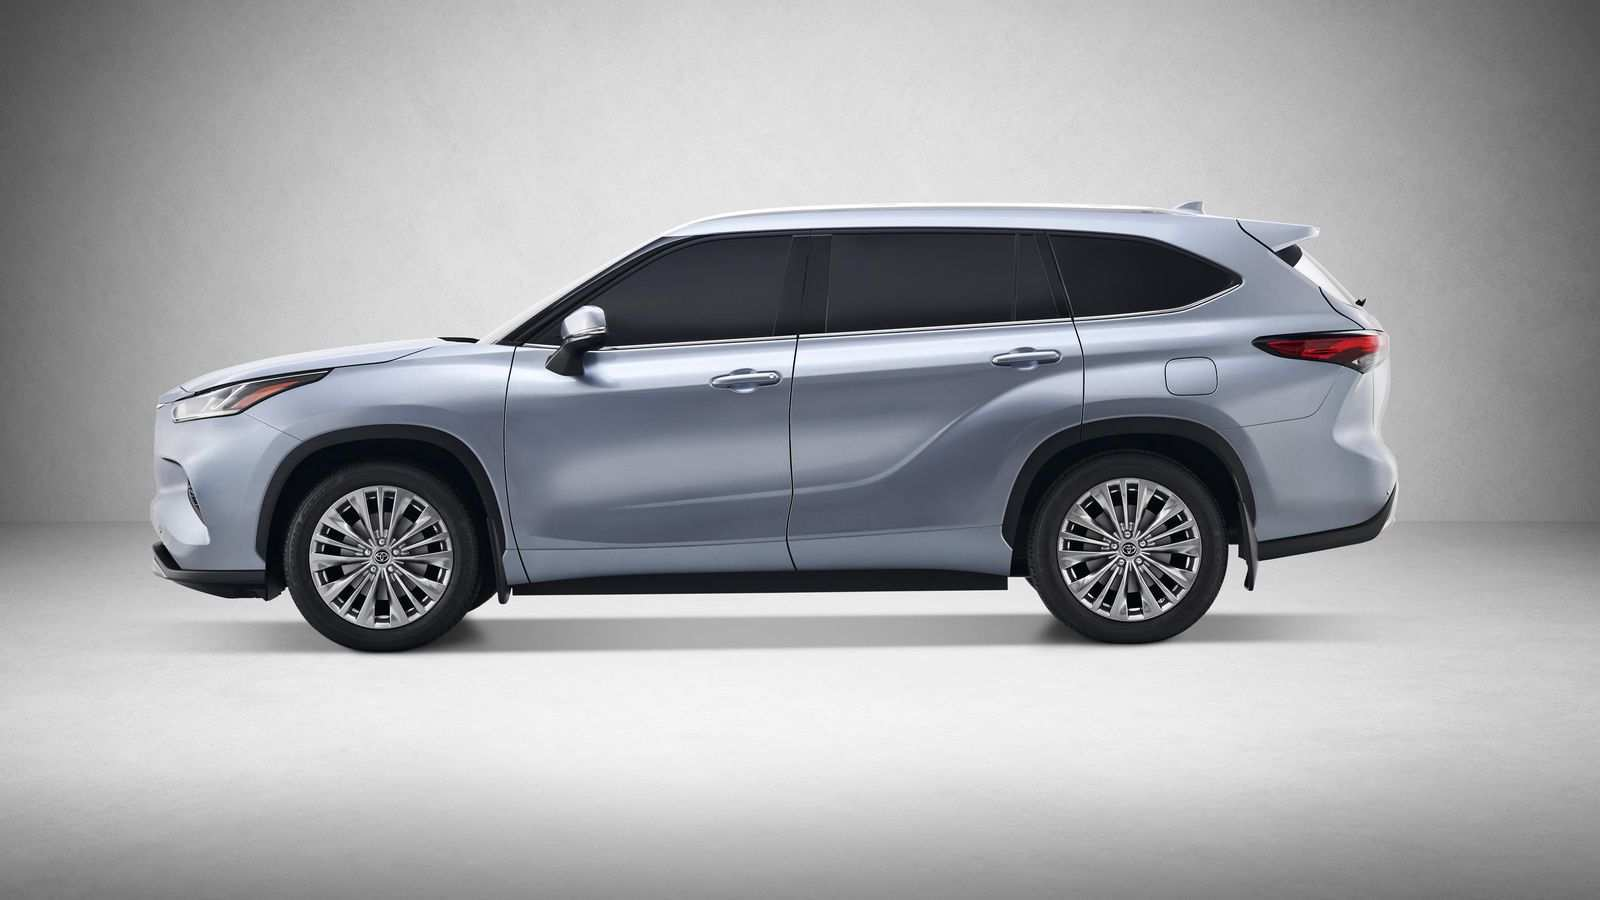 27 Best Review Toyota Kluger New Model 2020 Exterior and Interior for Toyota Kluger New Model 2020